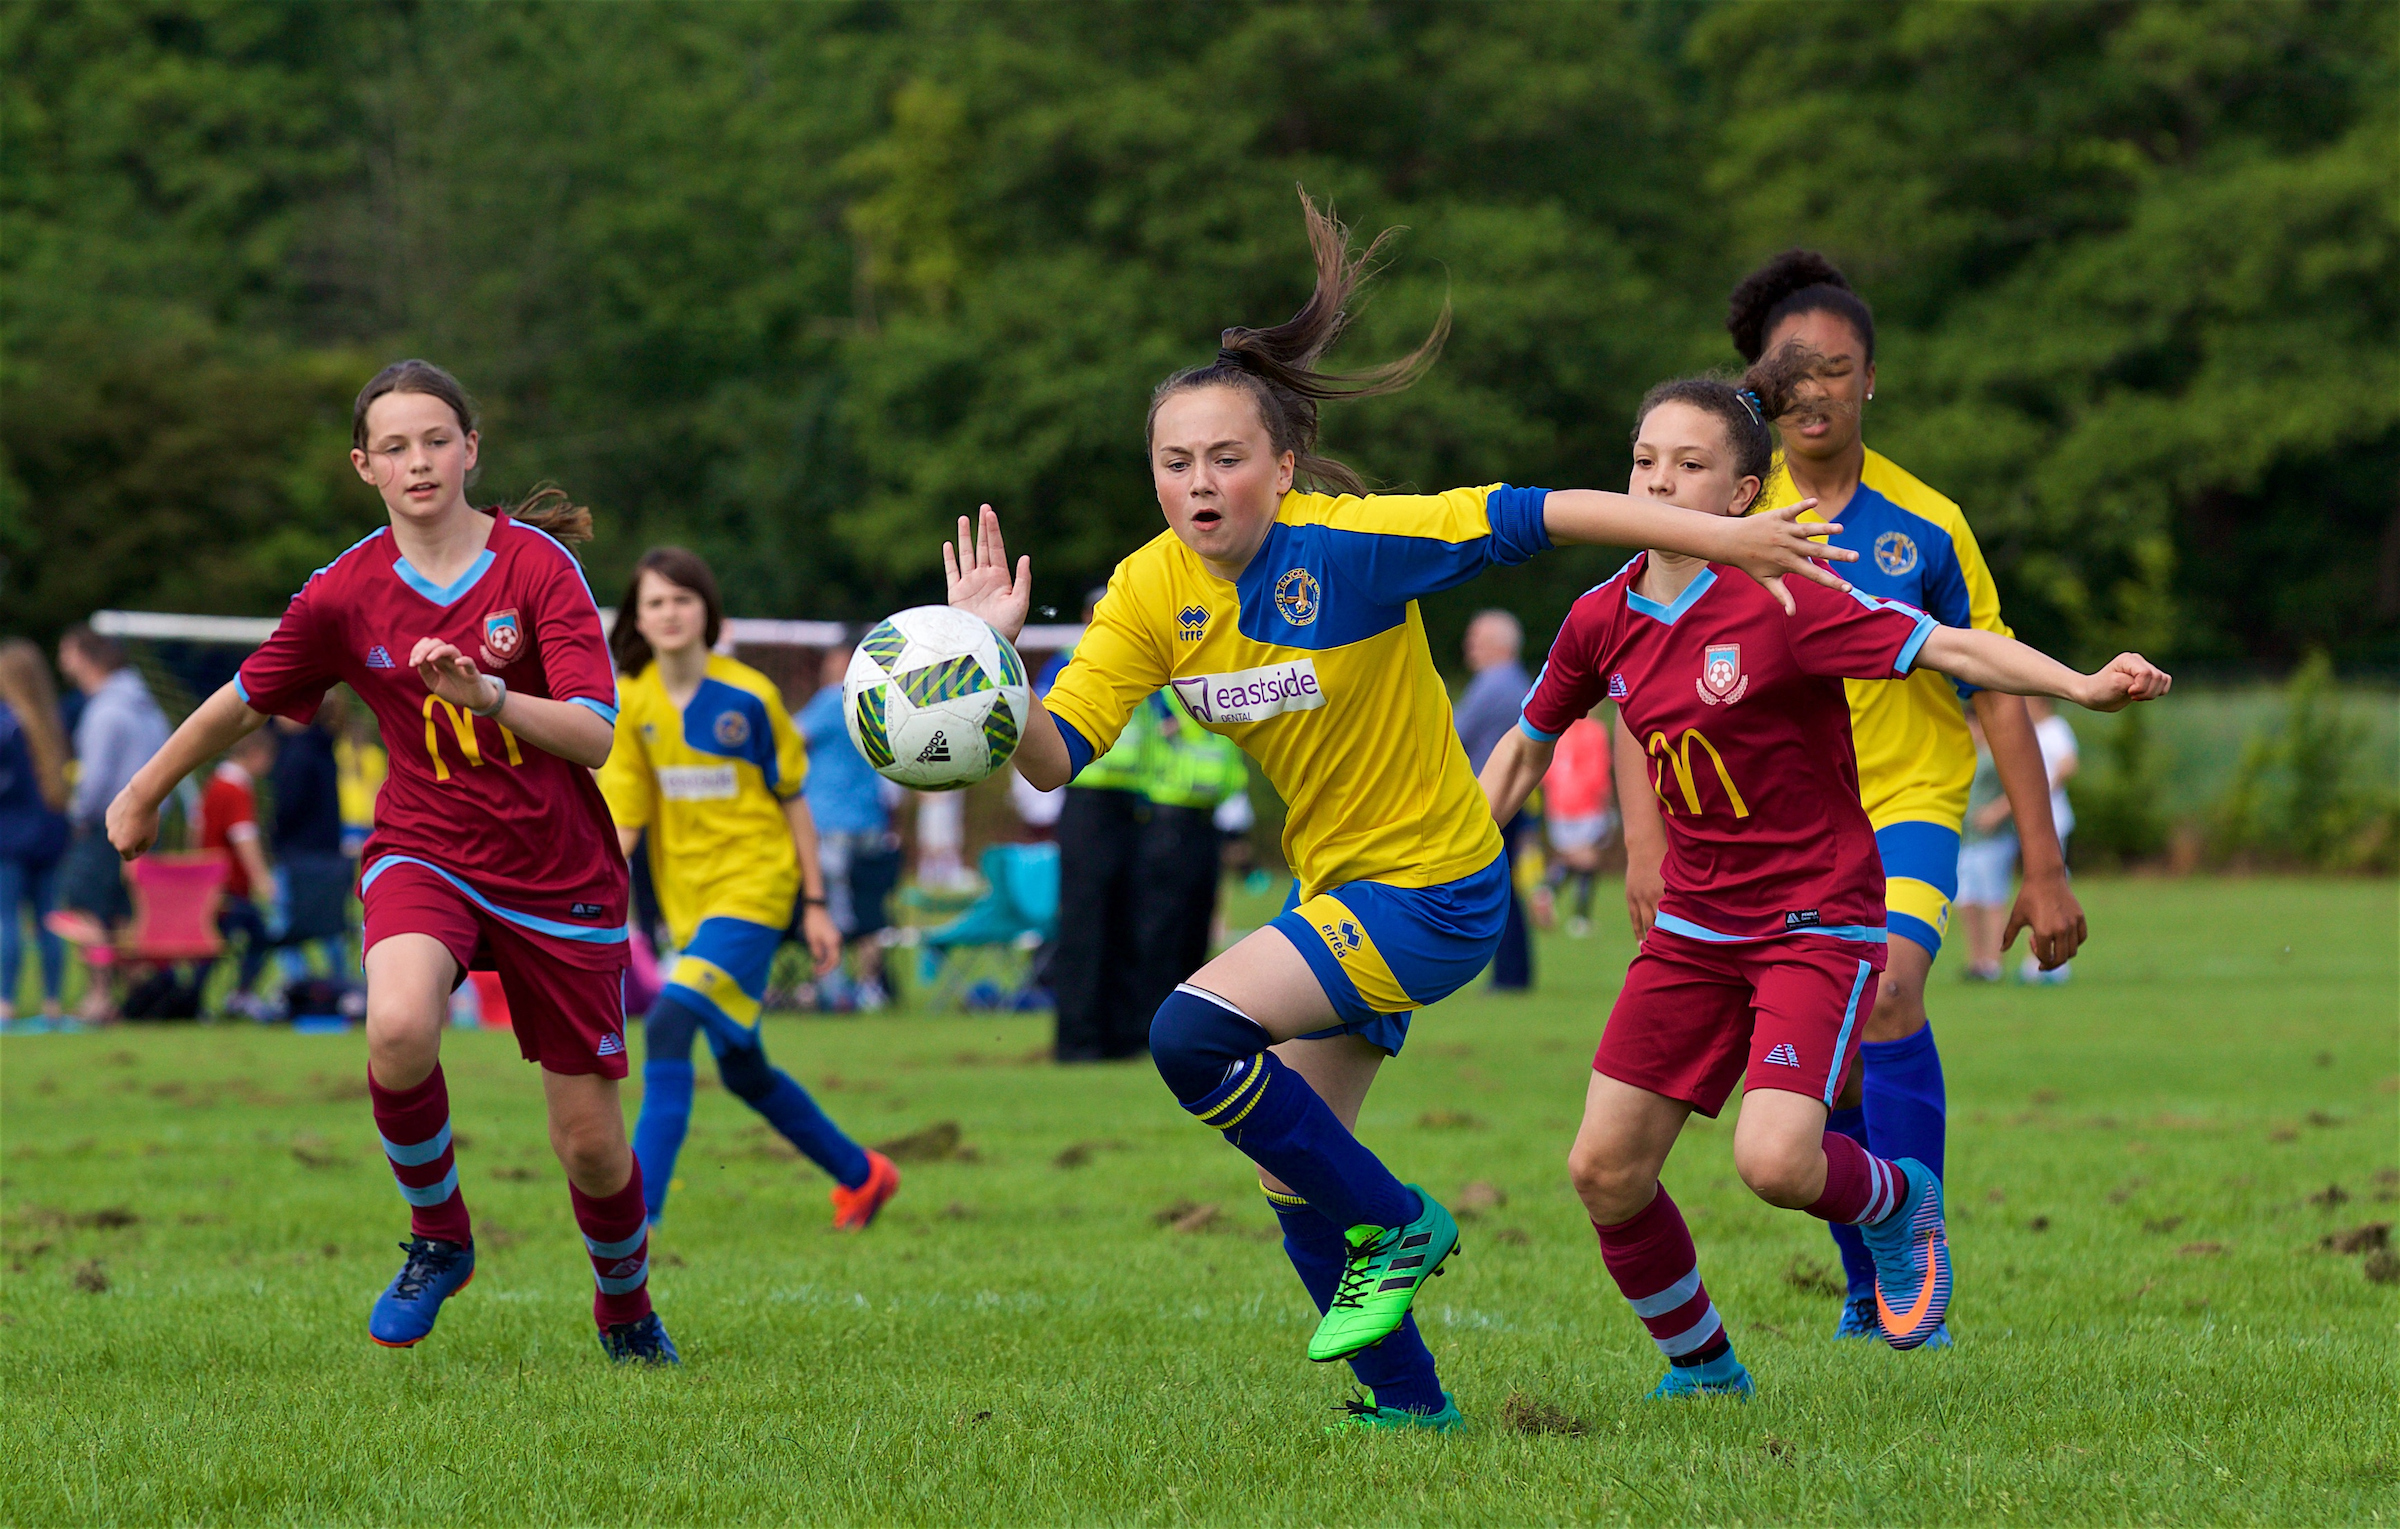 Girls football participation rises by 17% in Wales